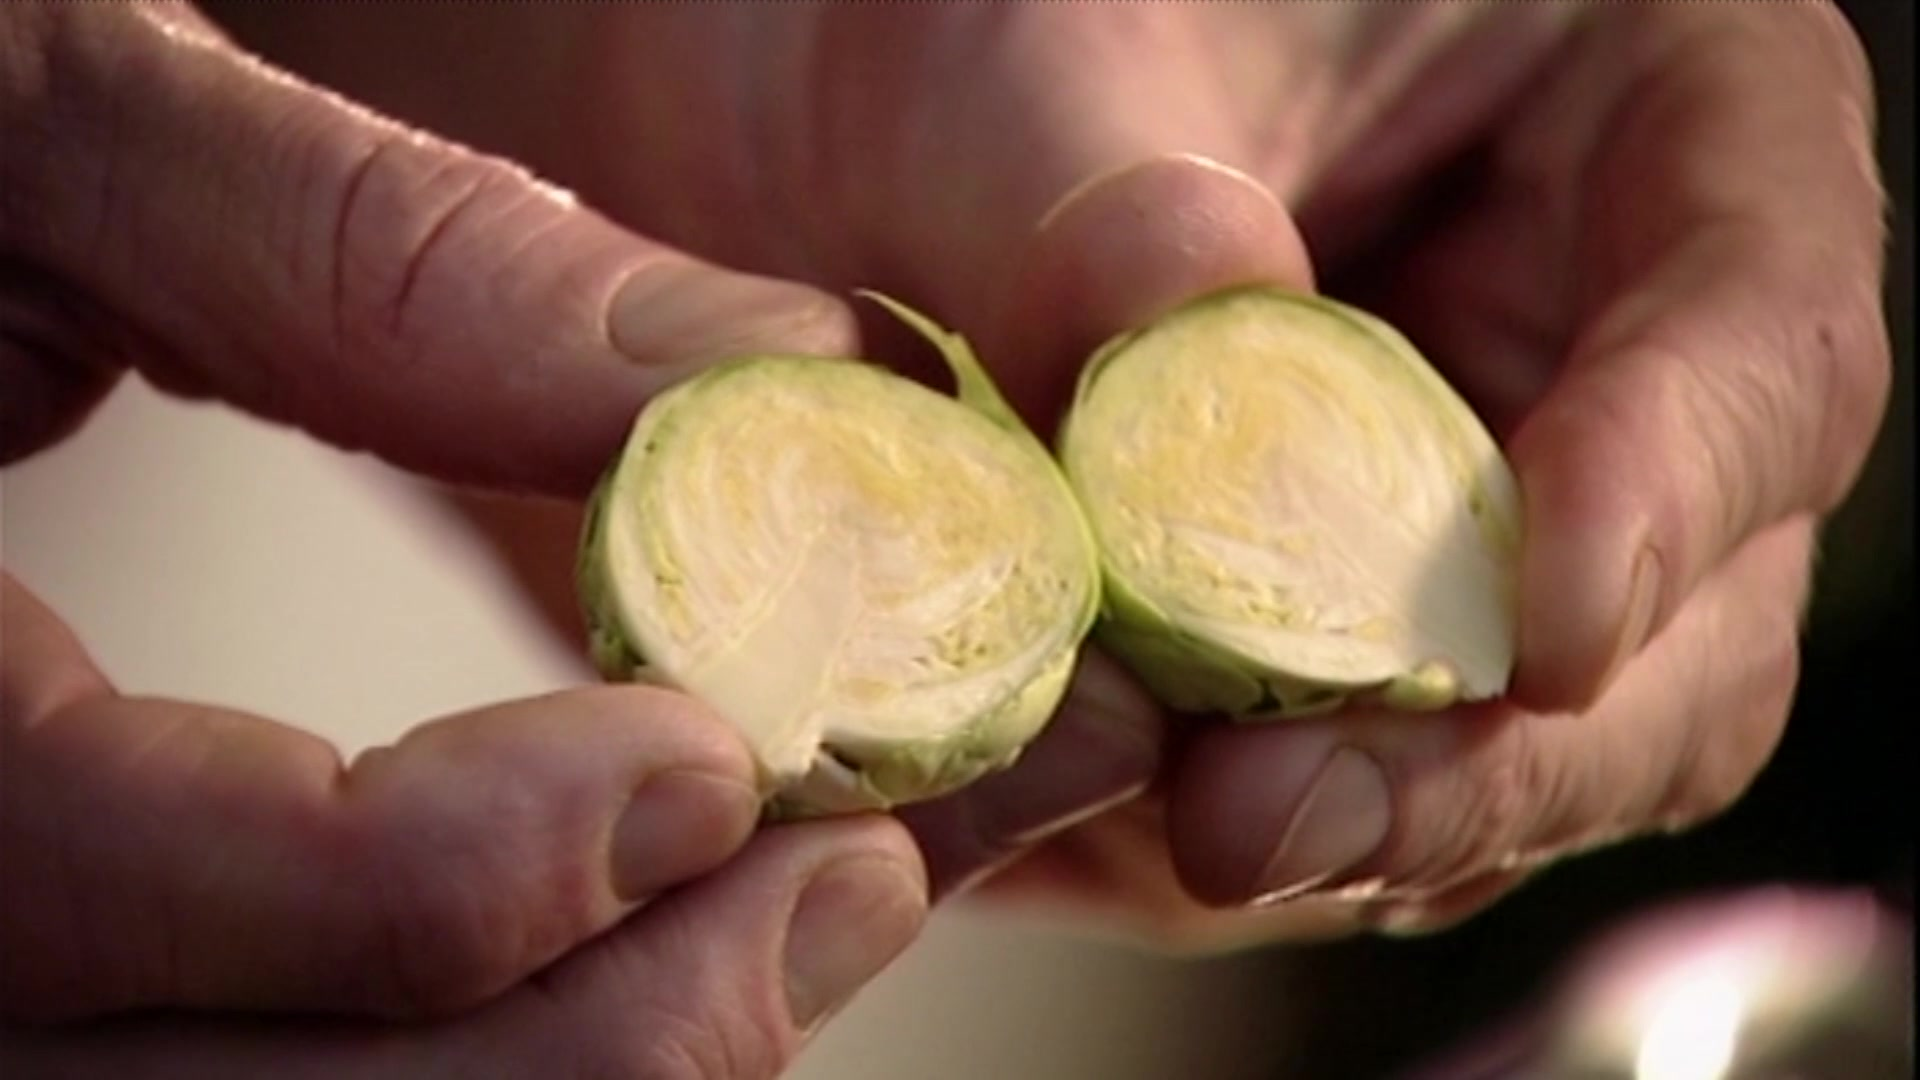 Gordon Ramsay's Roasted Brussel Sprouts Recipe